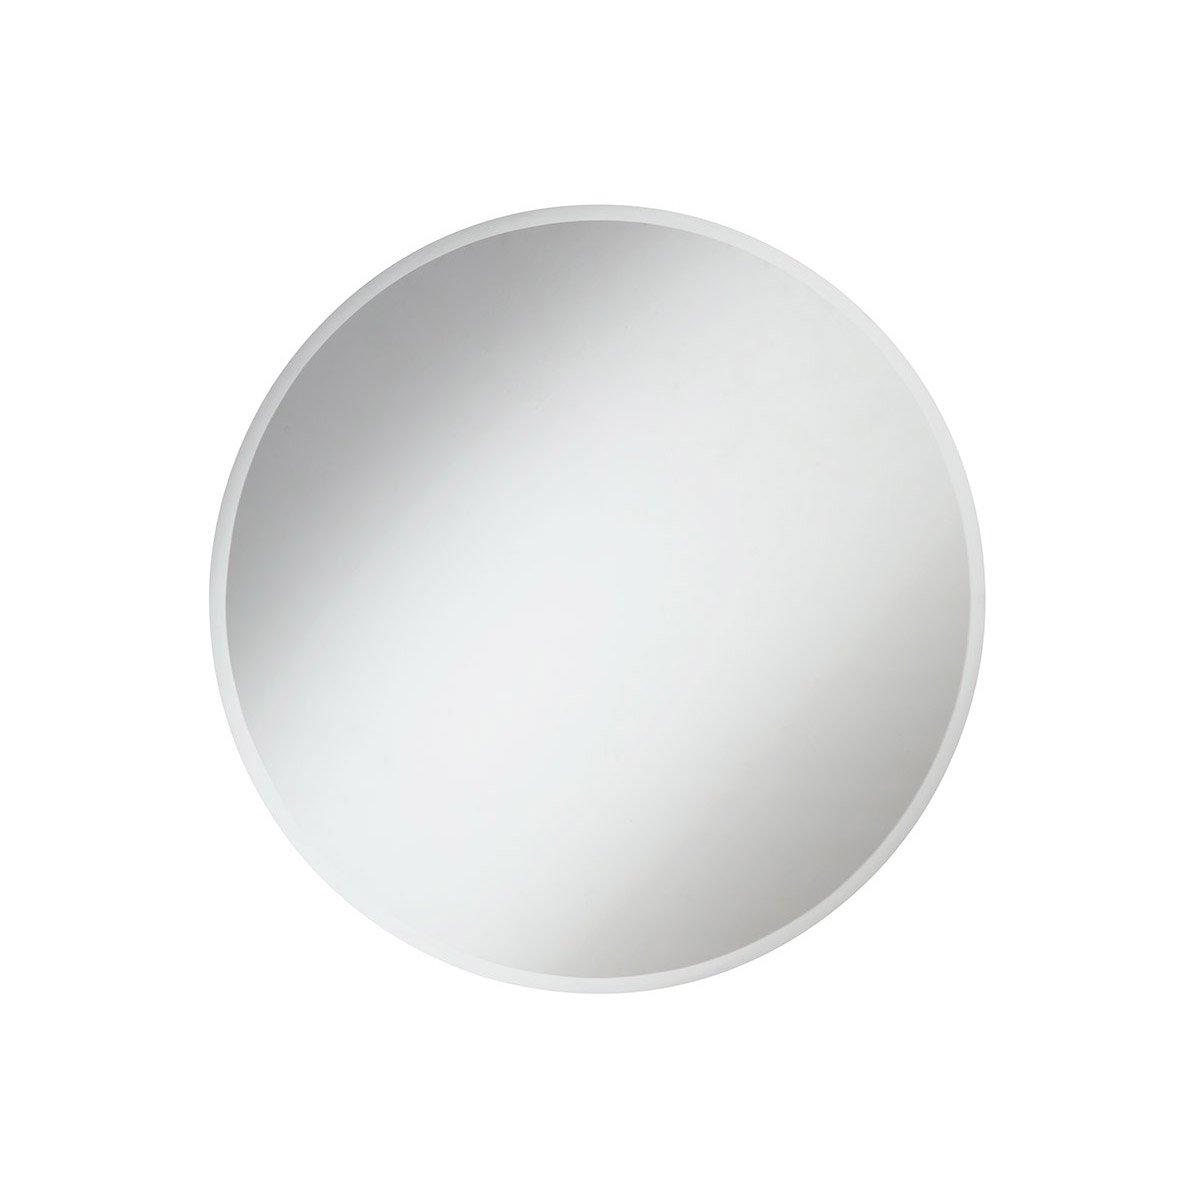 Modern 32 X 32 Contemporary Mirror - Clear Finish (Mr-4019) Mirror